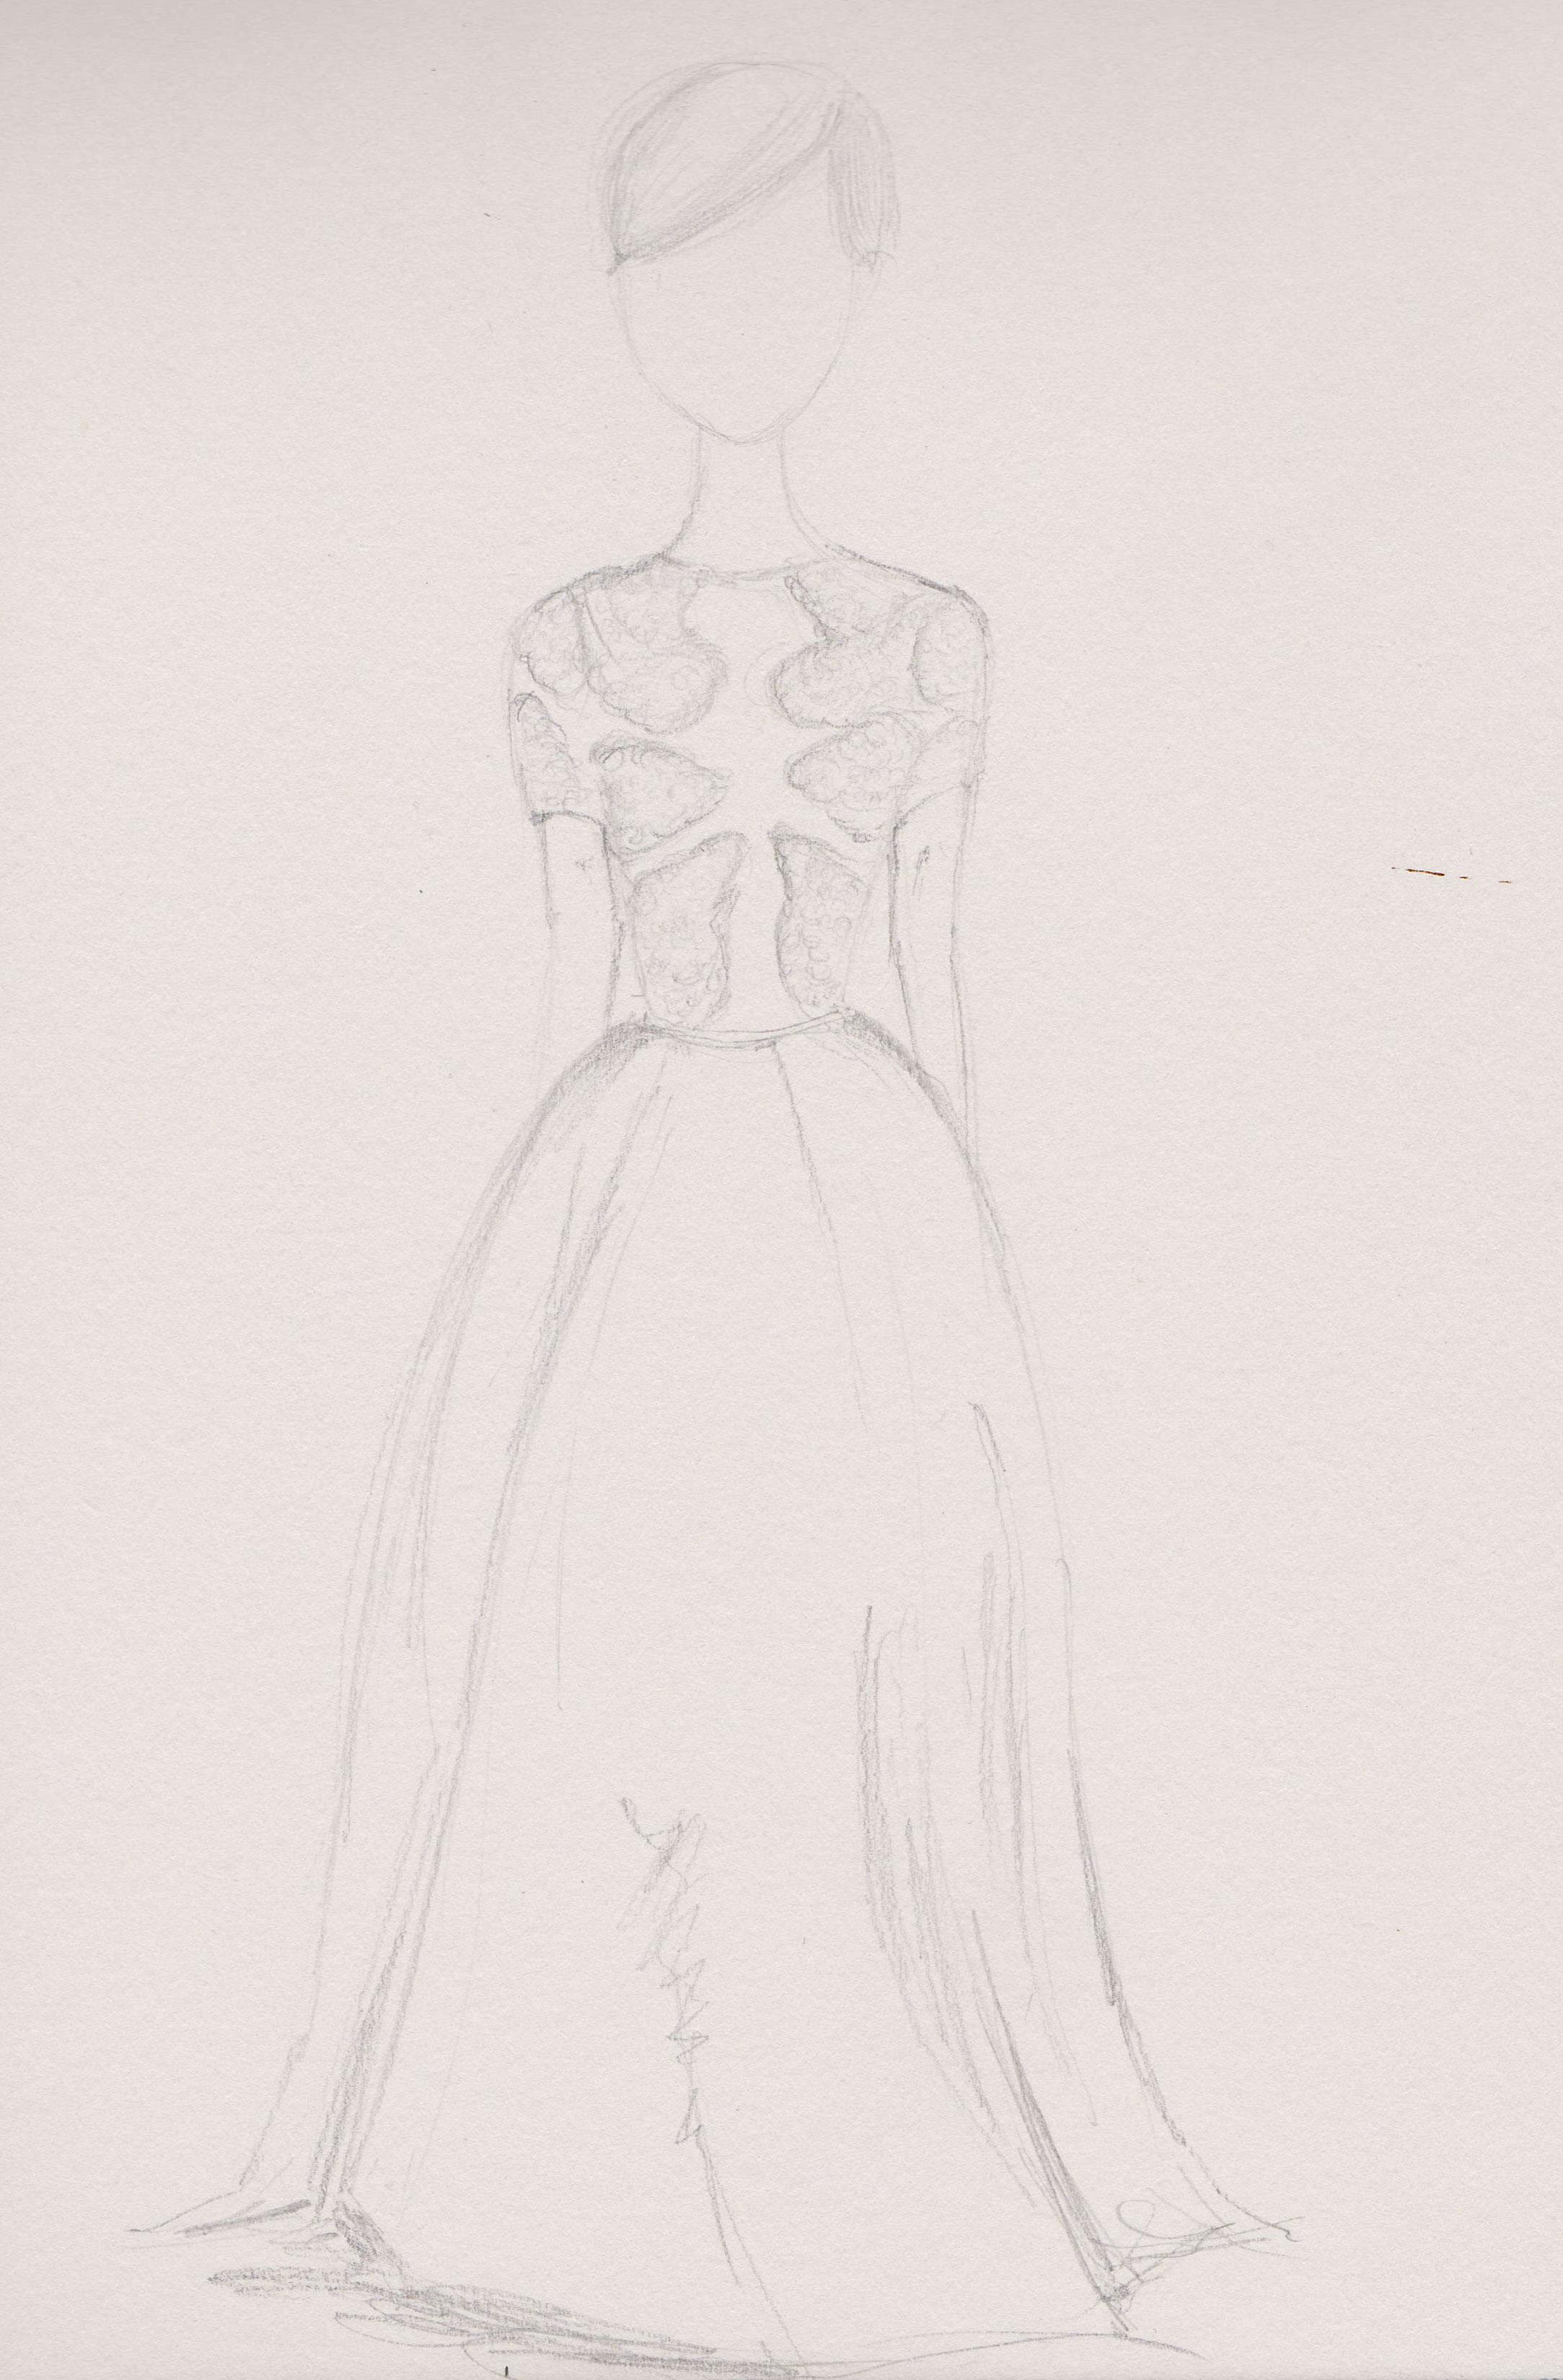 SKETCHES - Ethereal - image 4 - student project